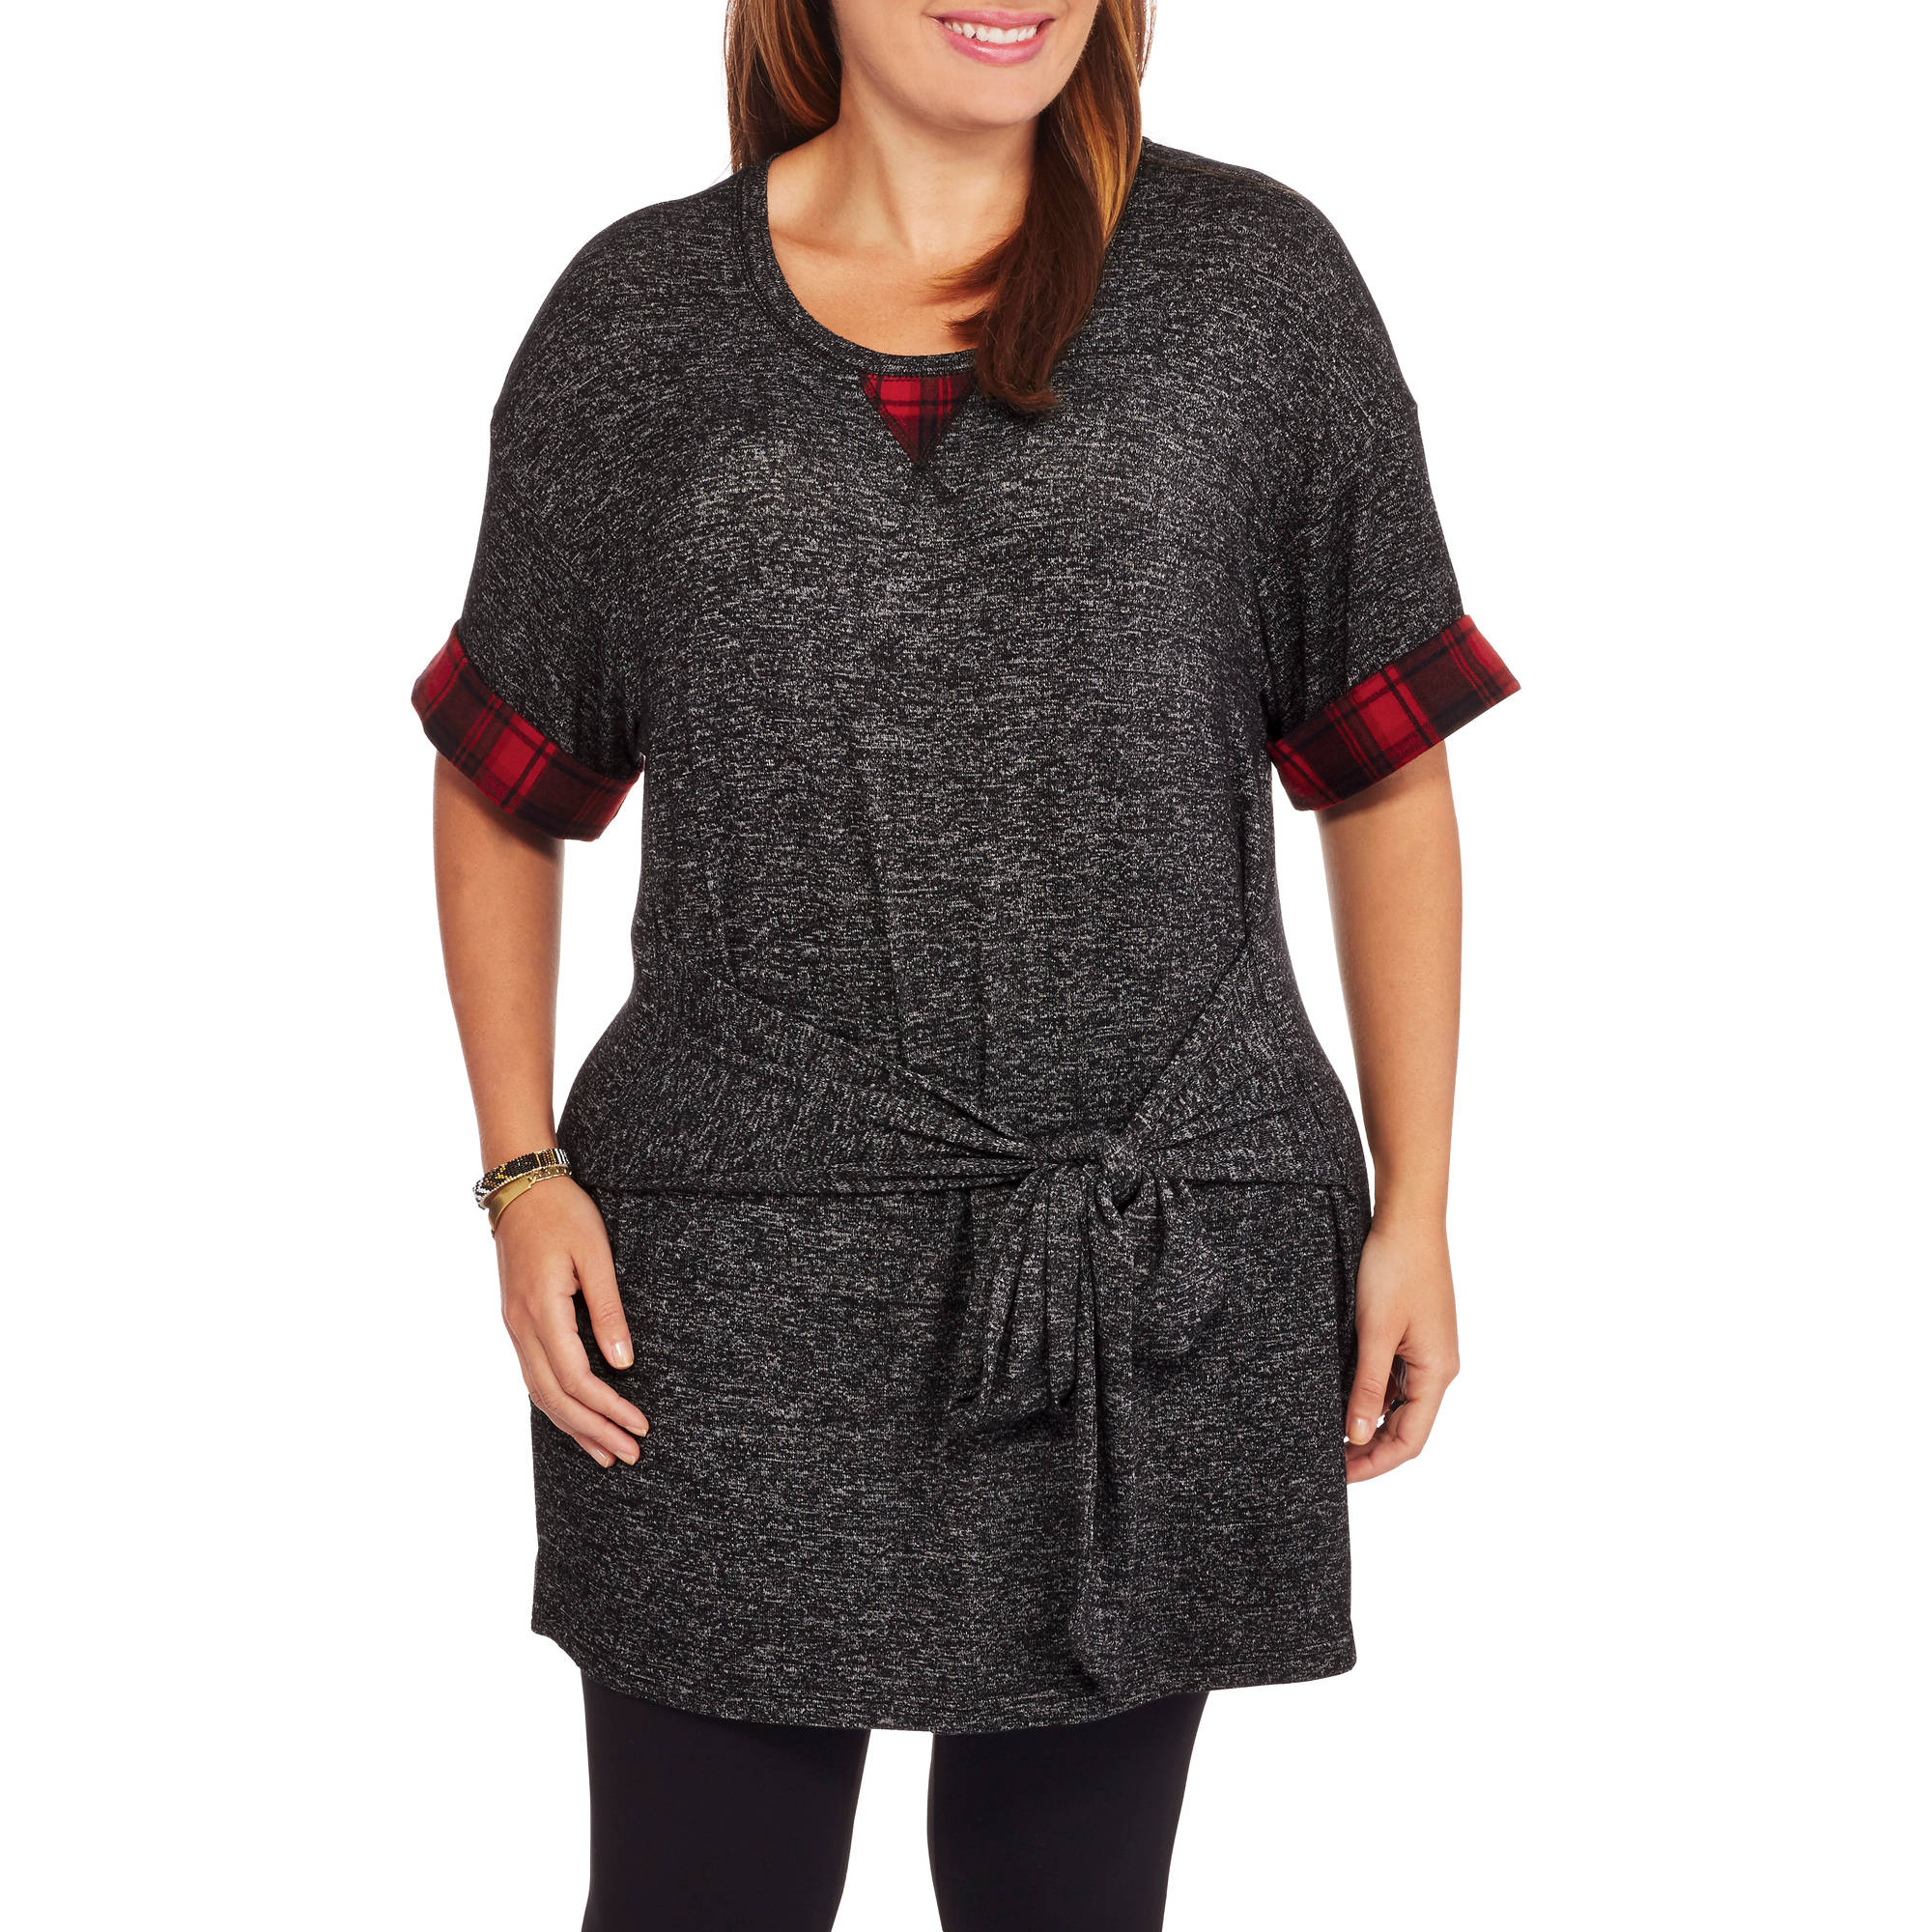 Loyal Threads Juniors' Plus Wrap Front Tunic with Plaid Trim